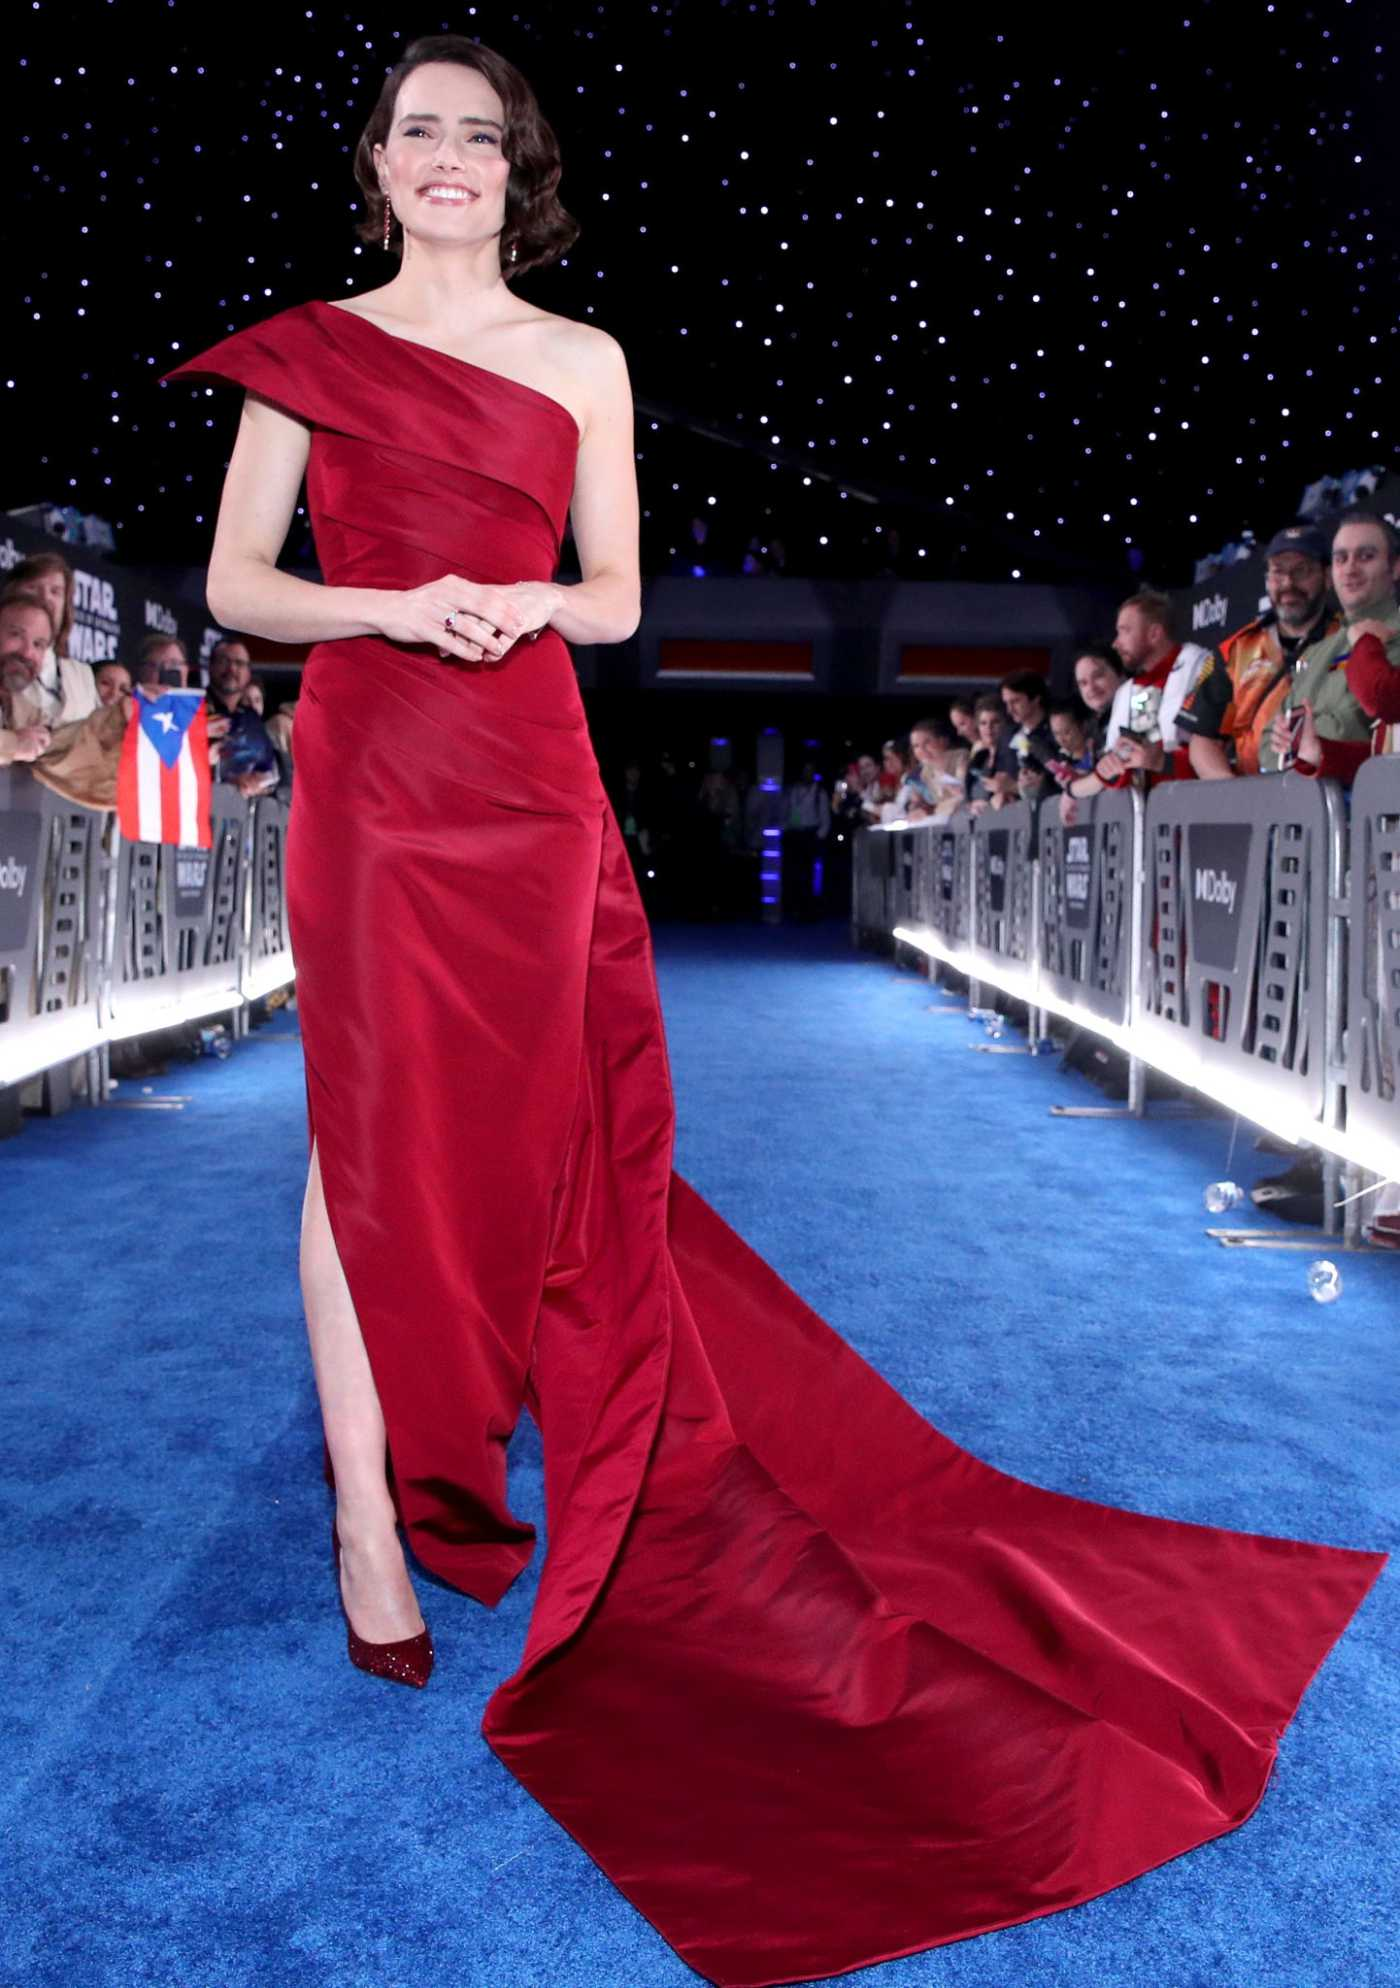 Daisy Ridley Attends Star Wars: The Rise of Skywalker Premiere in Los Angeles 12/16/2019